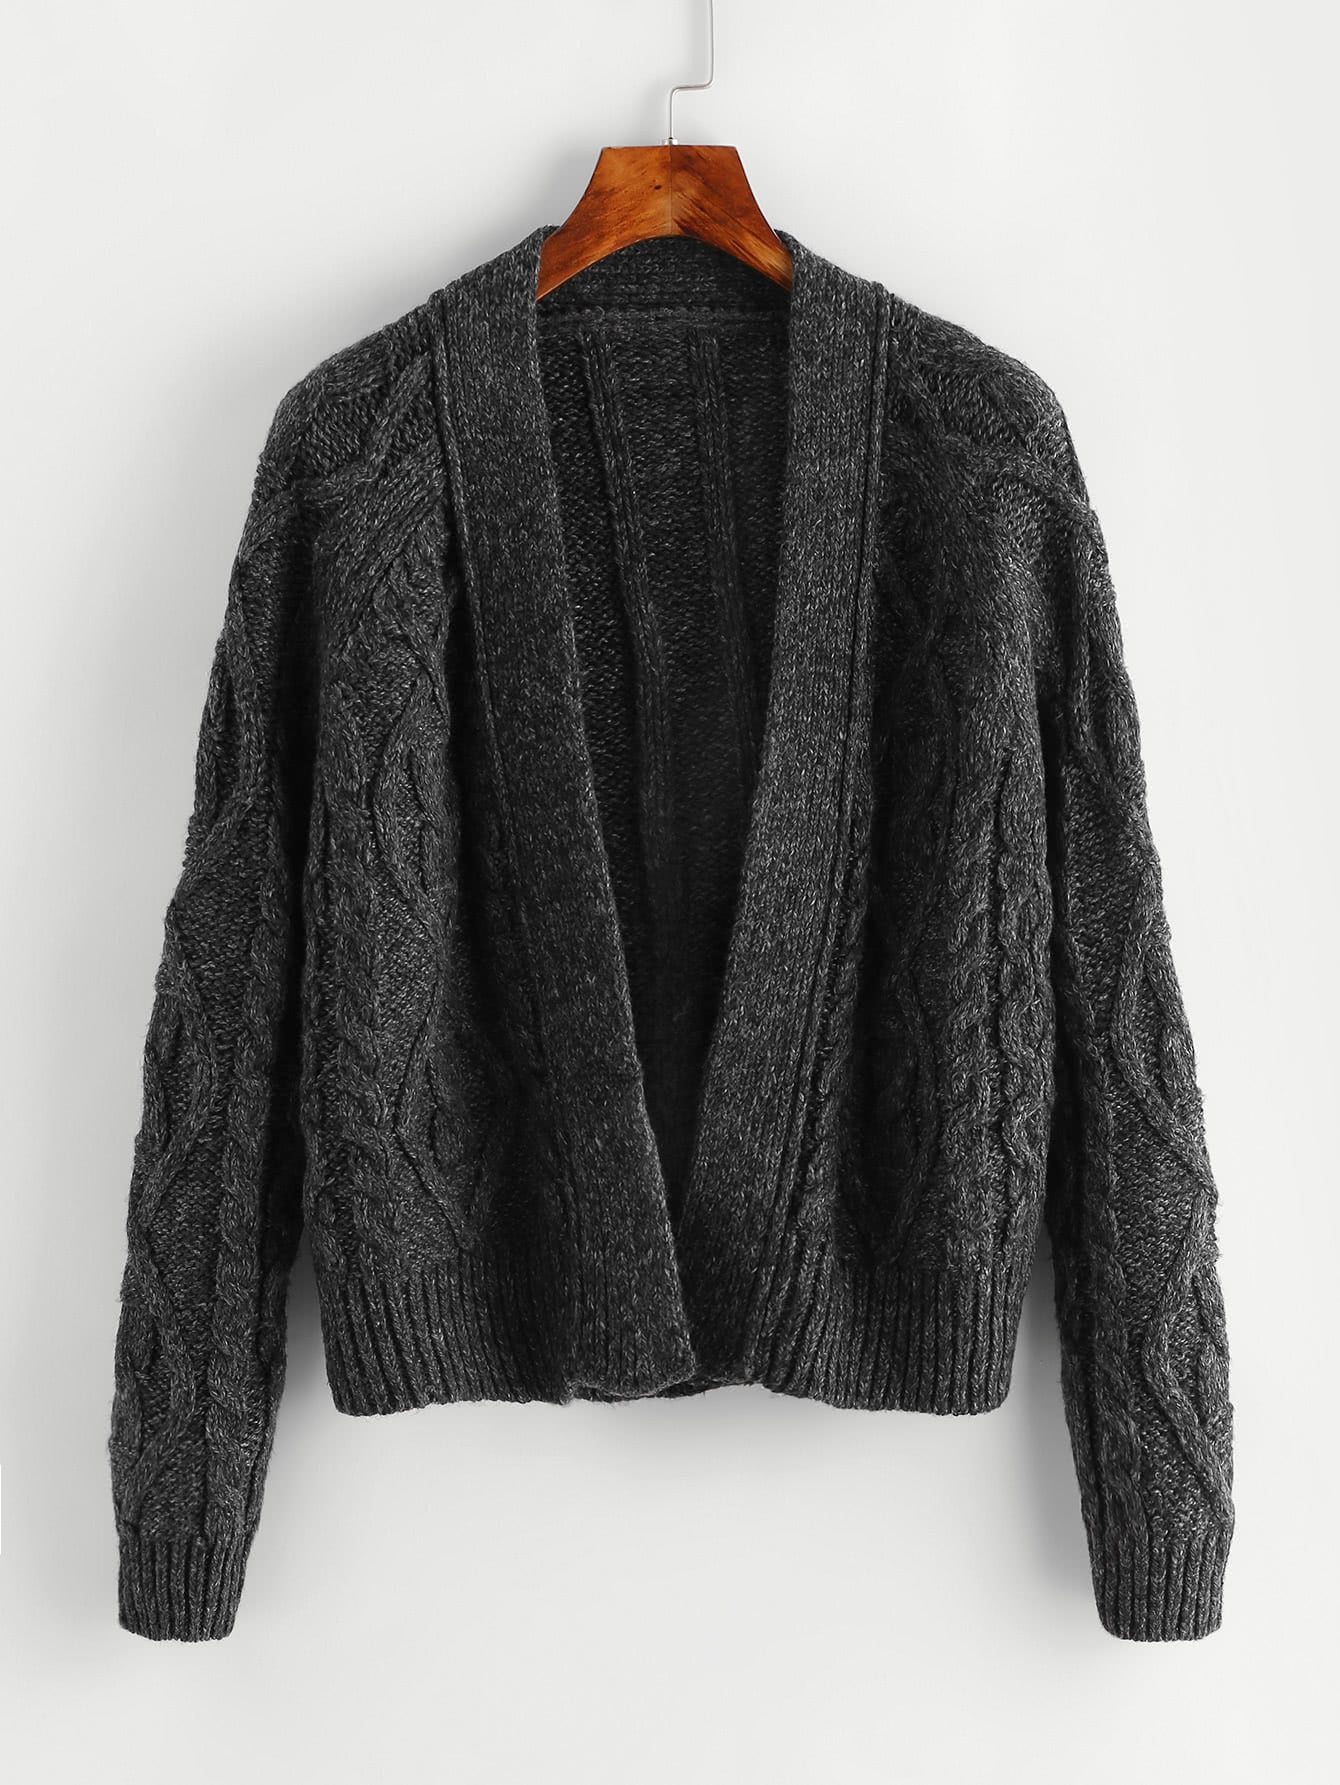 Open Front Ribbed Knit Sweater inc new gray women s size small ps petite open front ribbed cardigan sweater $79